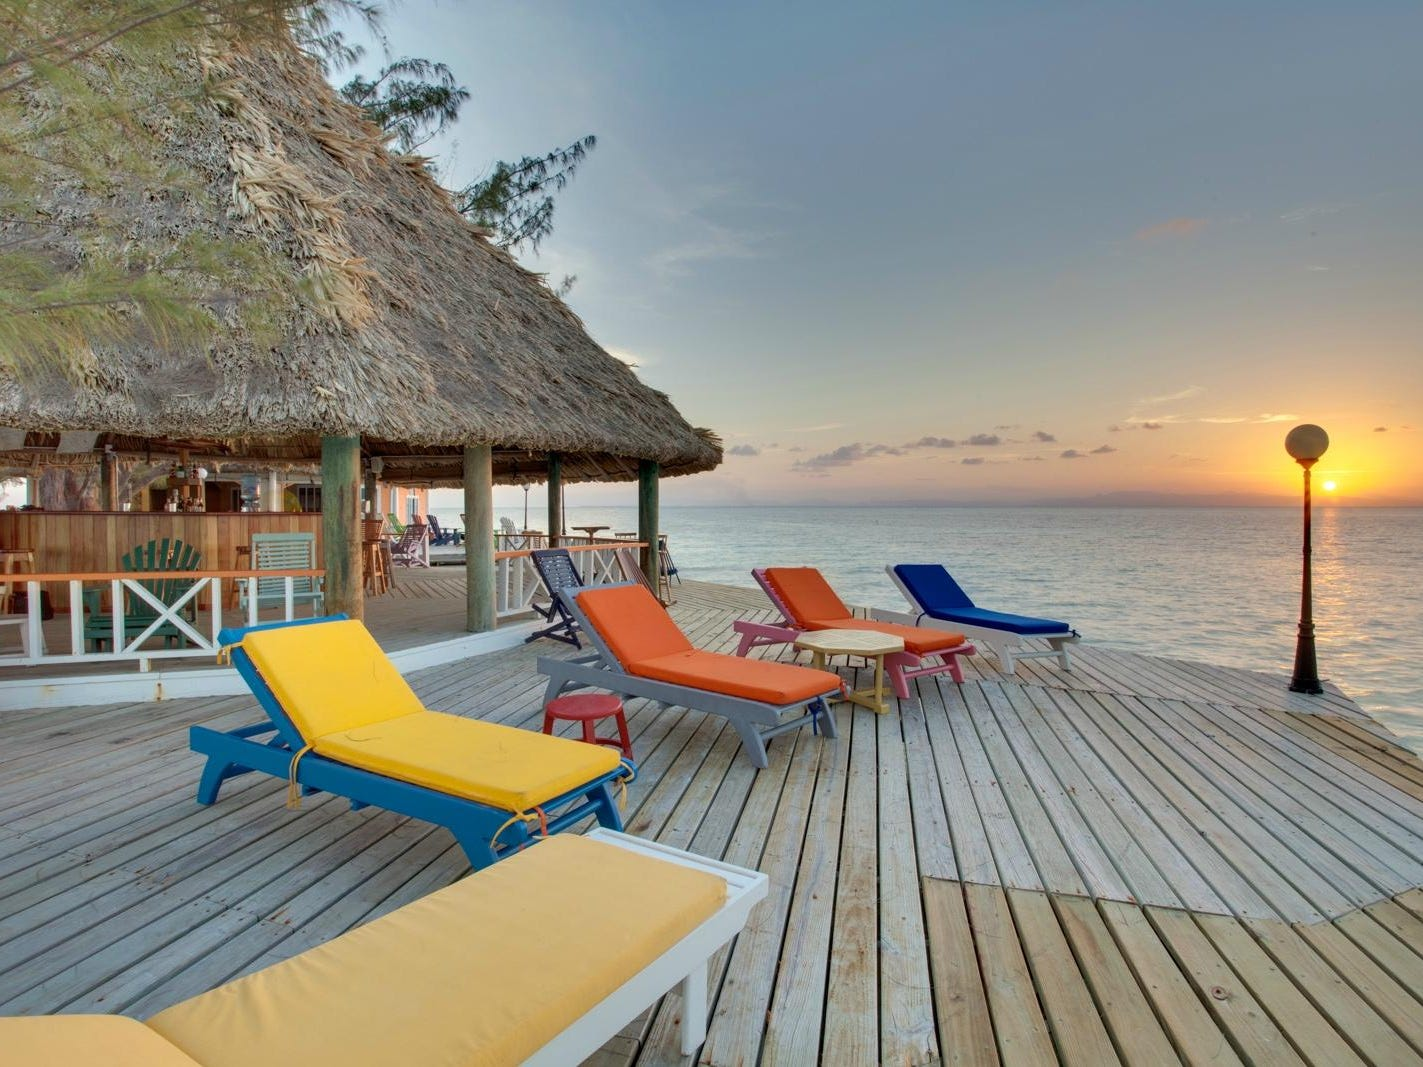 No. 2: Coco Plum Island Resort in Coco Plum Cay, Belize.